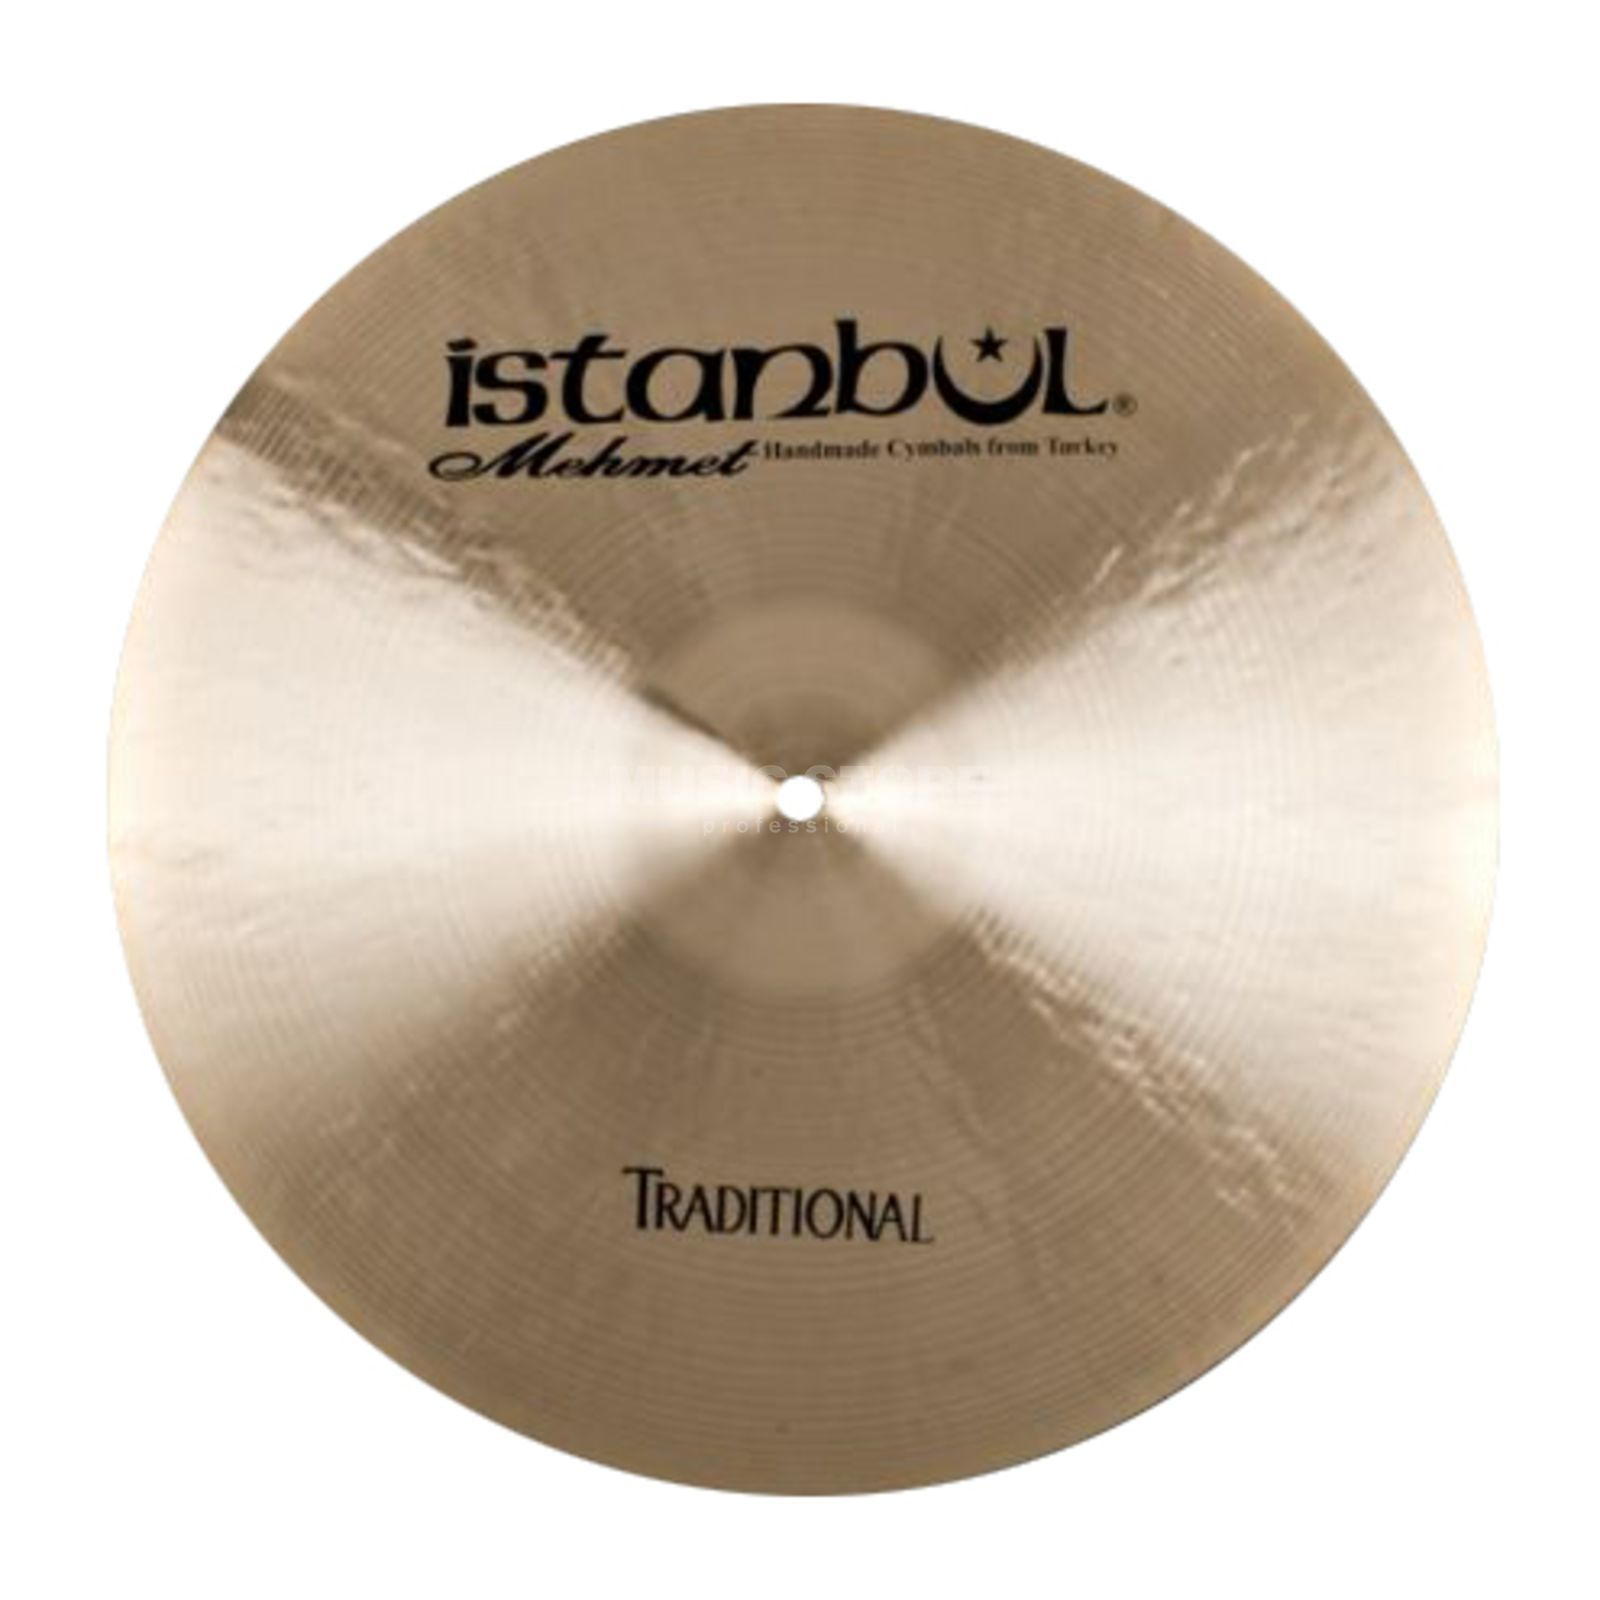 "Istanbul Traditional Medium Crash 14"", CM14 Produktbild"